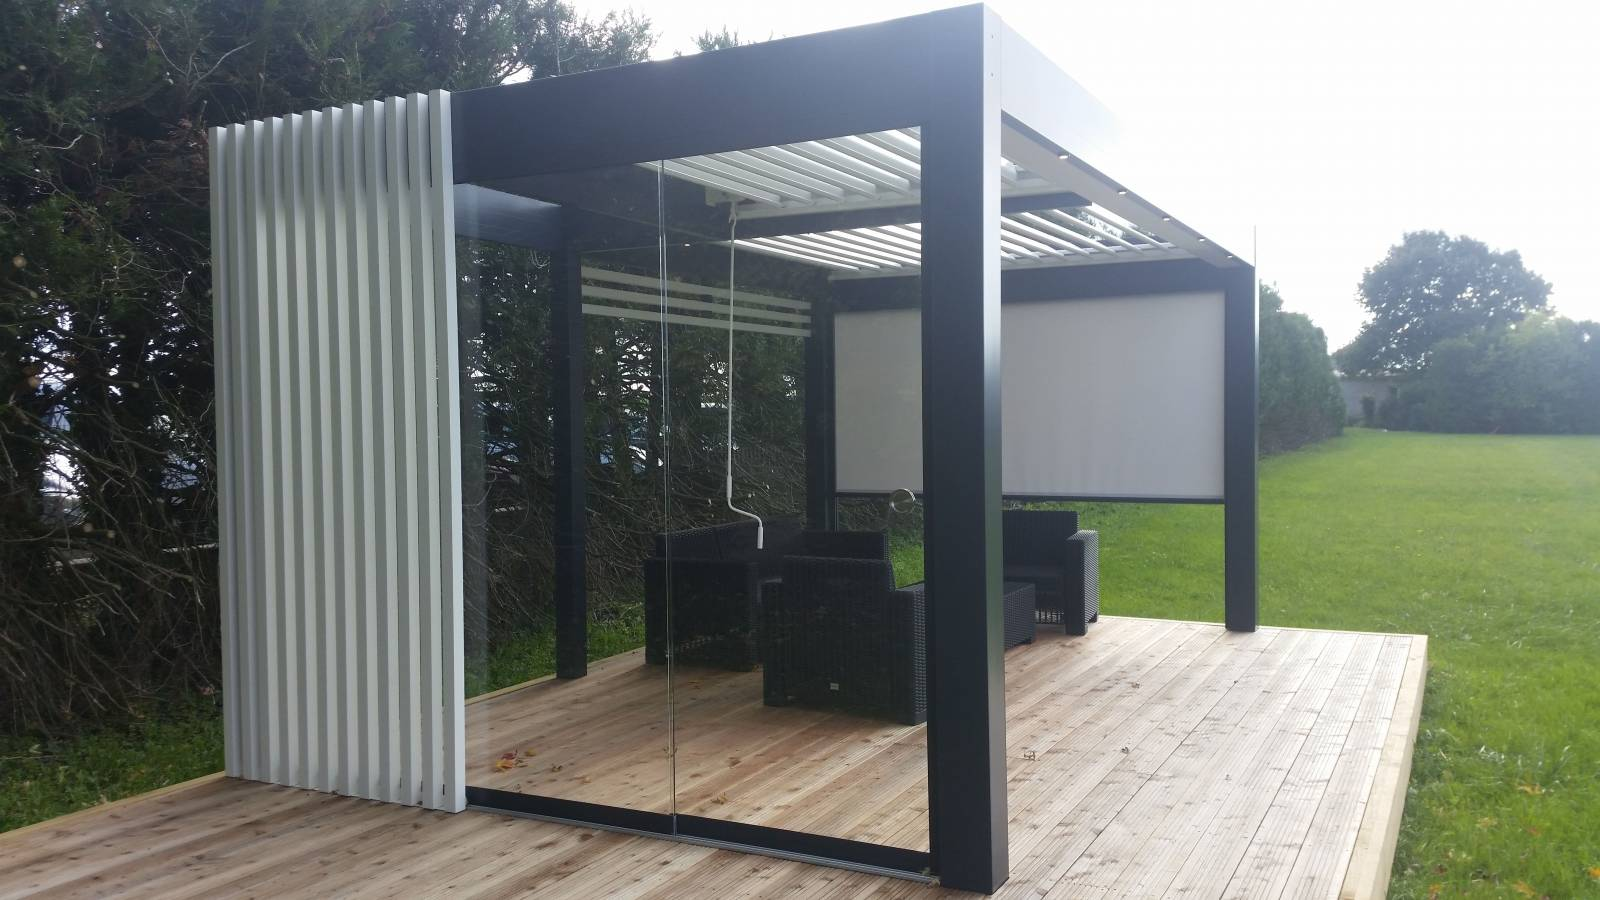 bouclier fermeture pergola bioclimatique conception de pergola bio climatique lyon. Black Bedroom Furniture Sets. Home Design Ideas